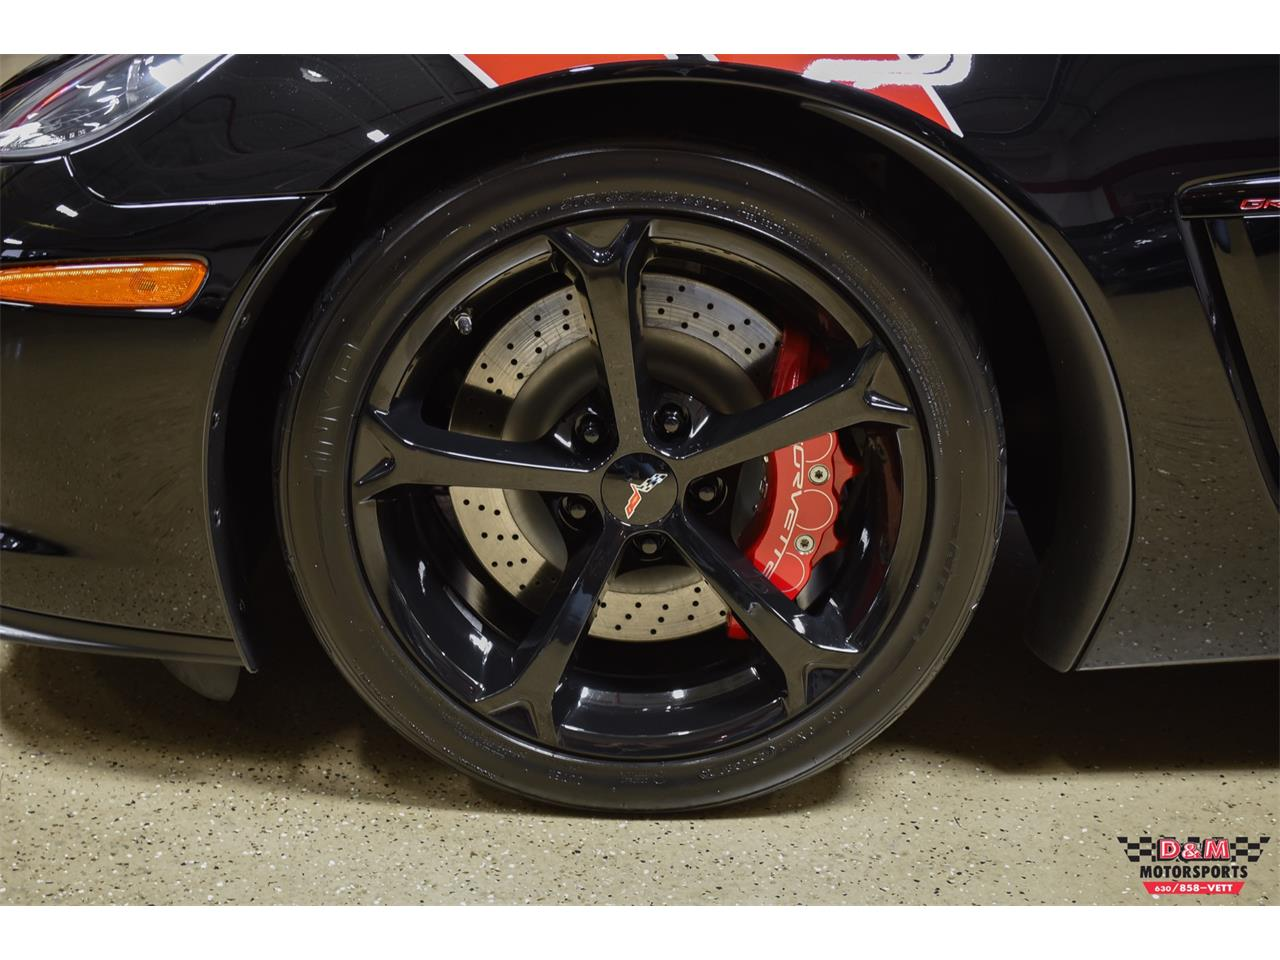 Large Picture of 2010 Corvette - $37,995.00 Offered by D & M Motorsports - PUJ0